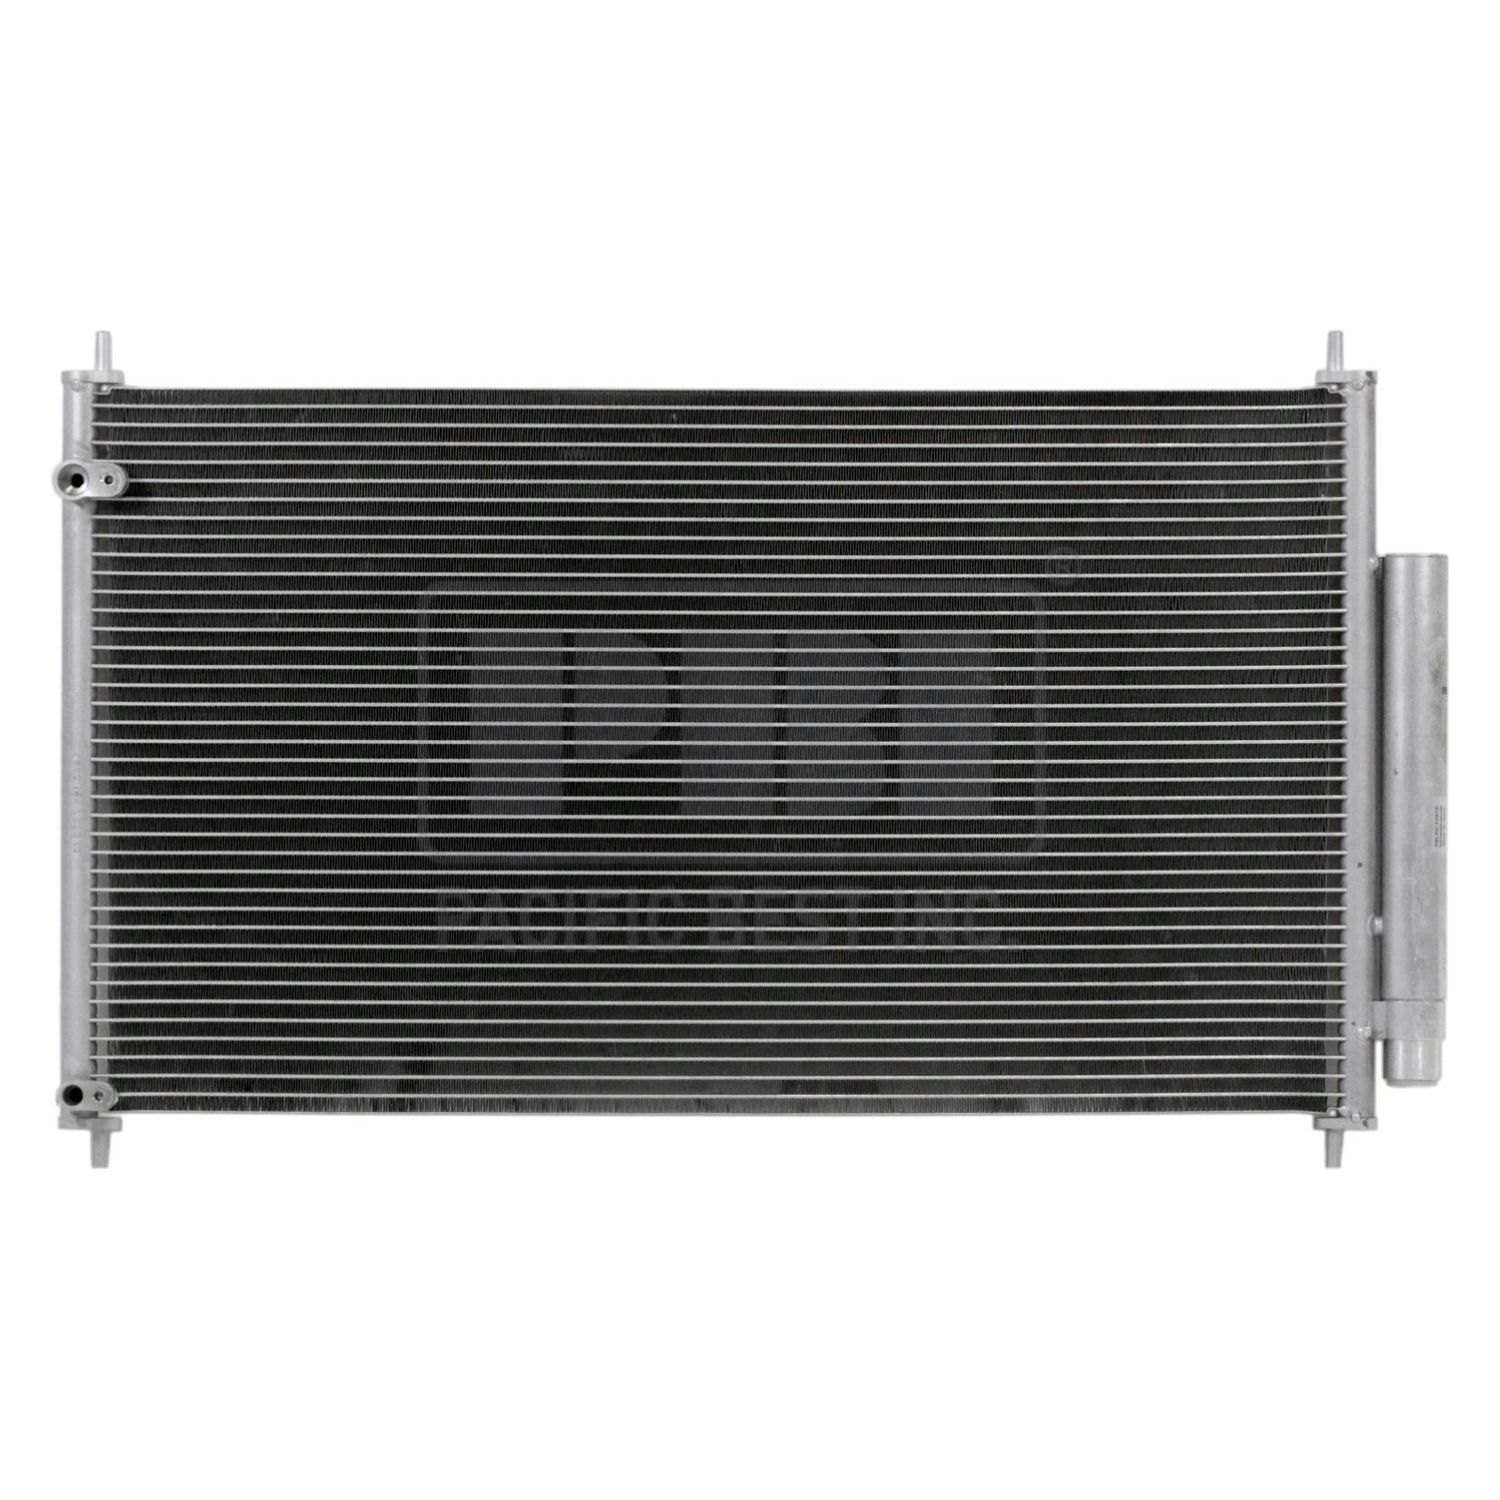 For Acura RL 2005-2012 Pacific Best PC3397P A/C Condenser